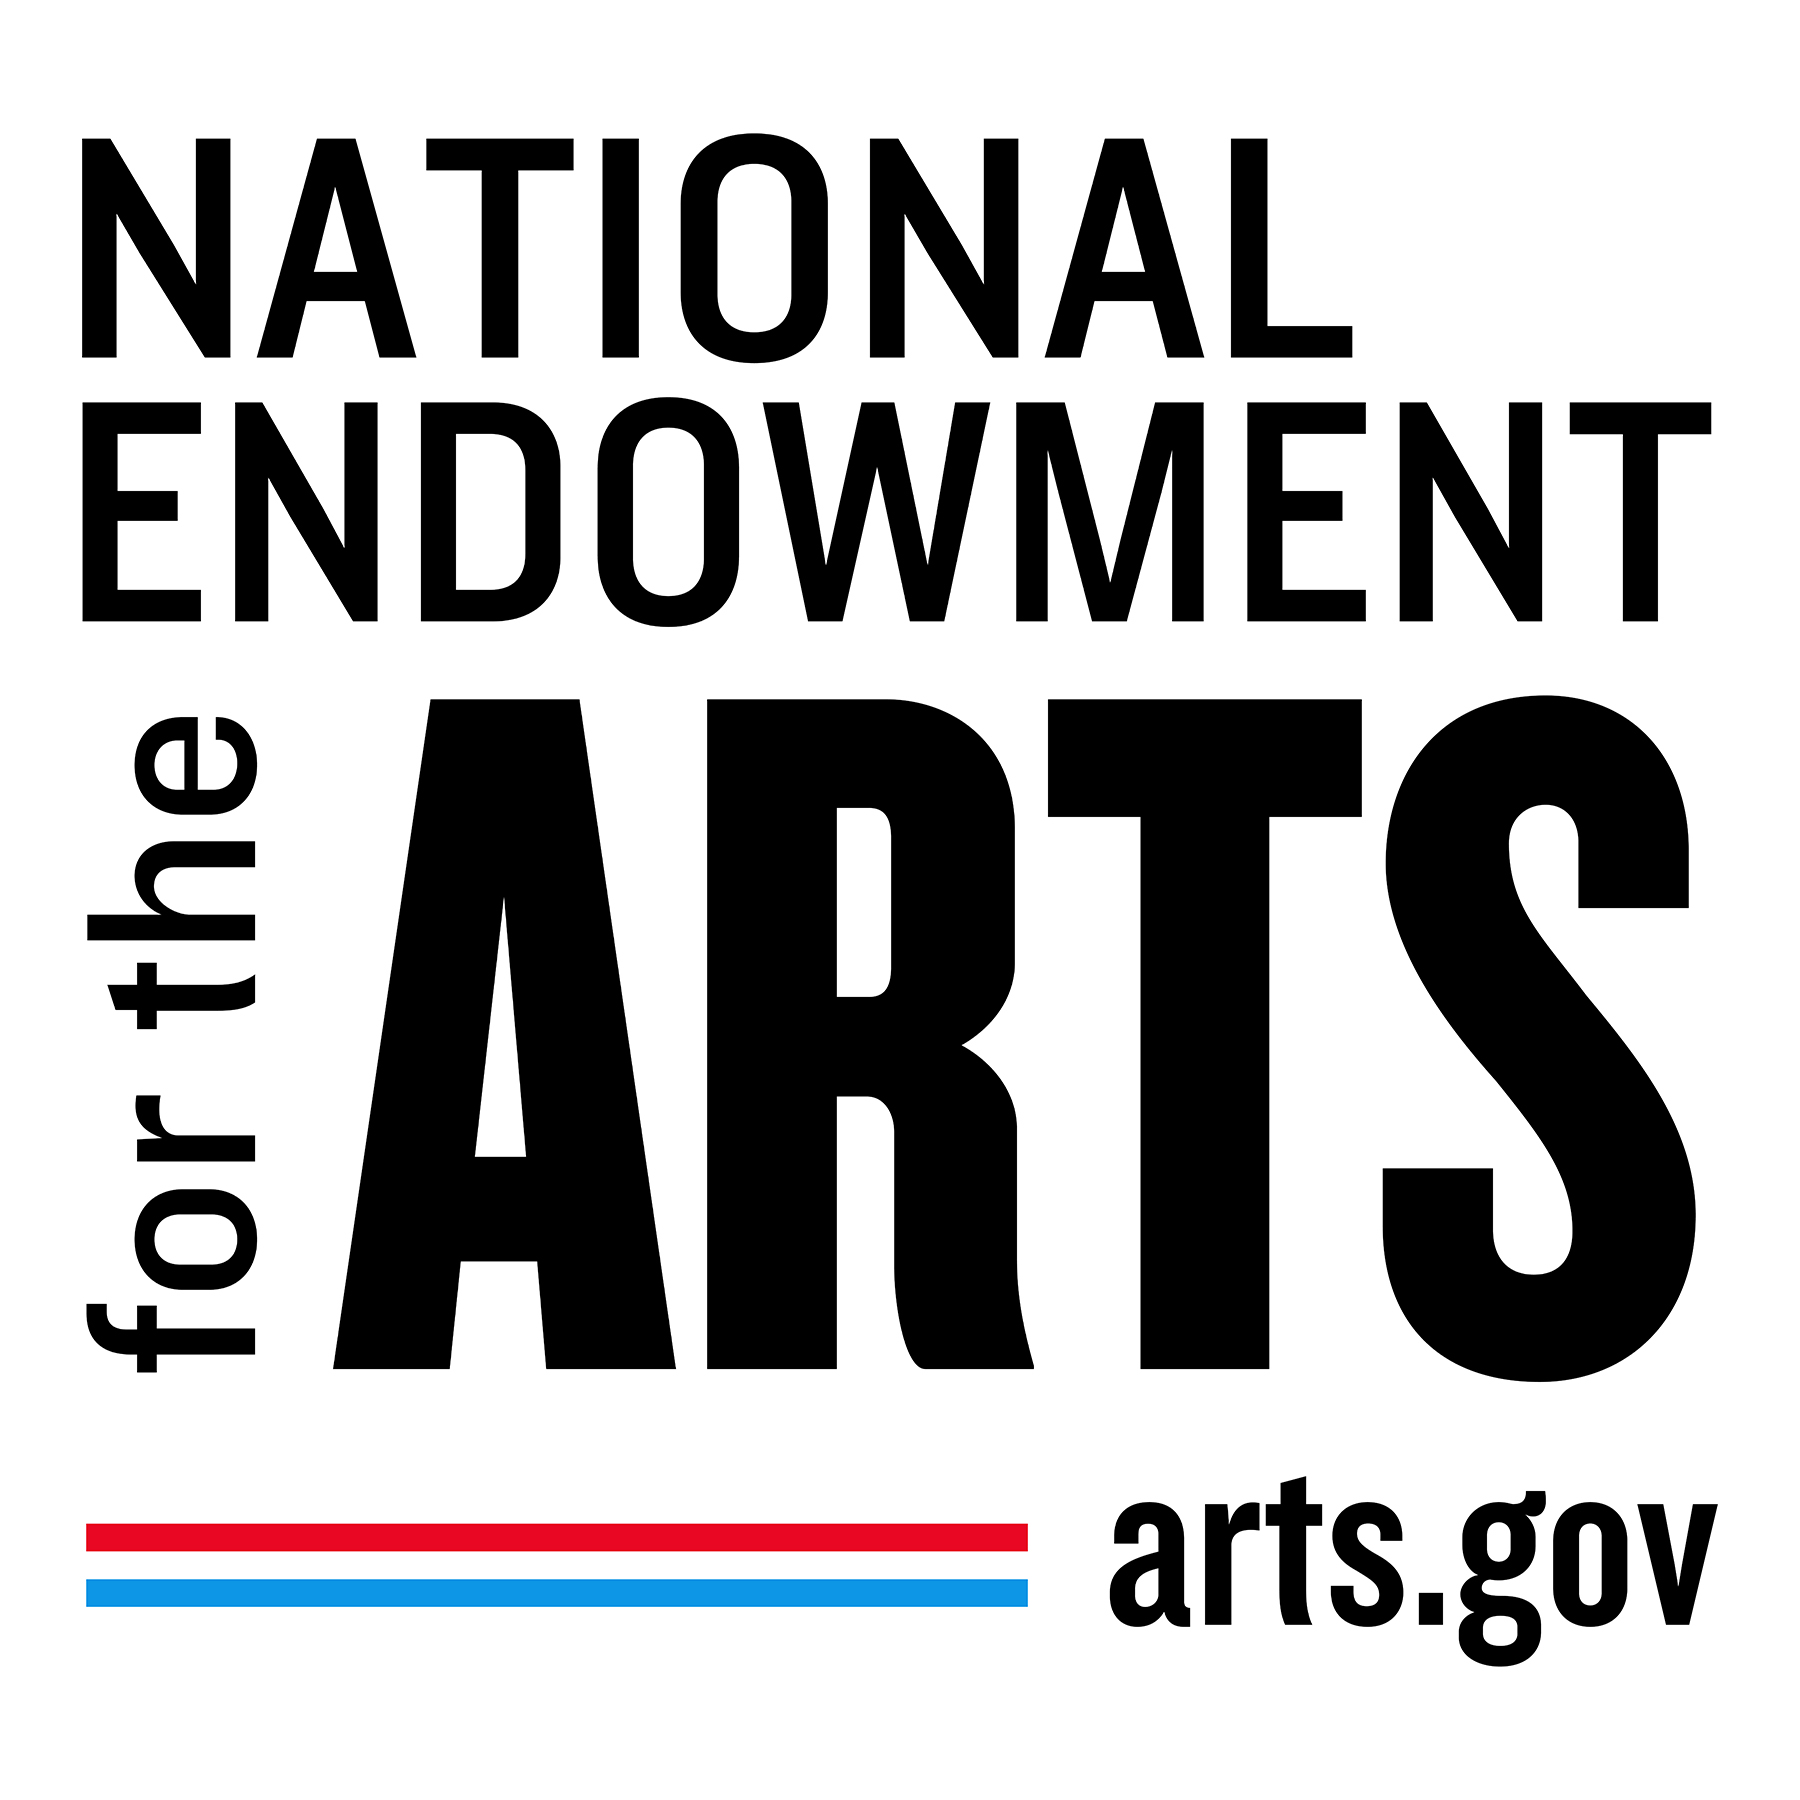 NEA-2018-Square-Logo-with-url2.jpg